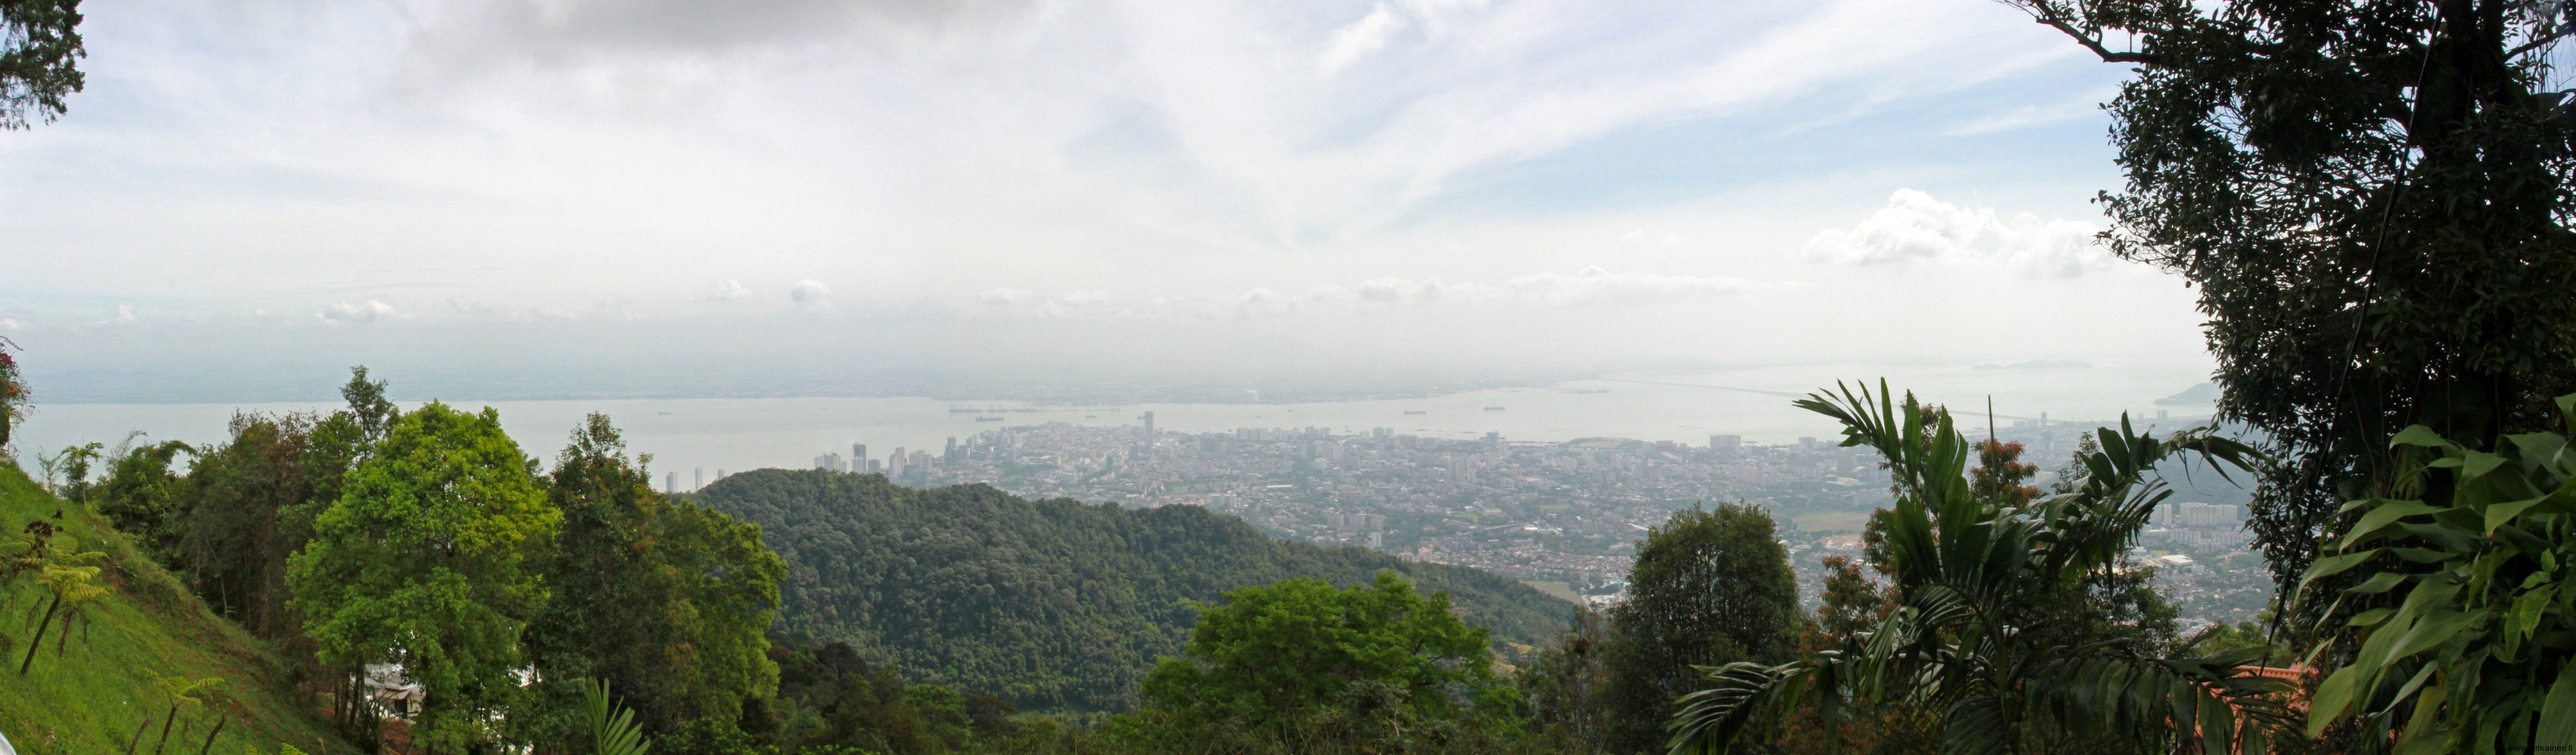 Penang Island - georgetown-from-penang-hill